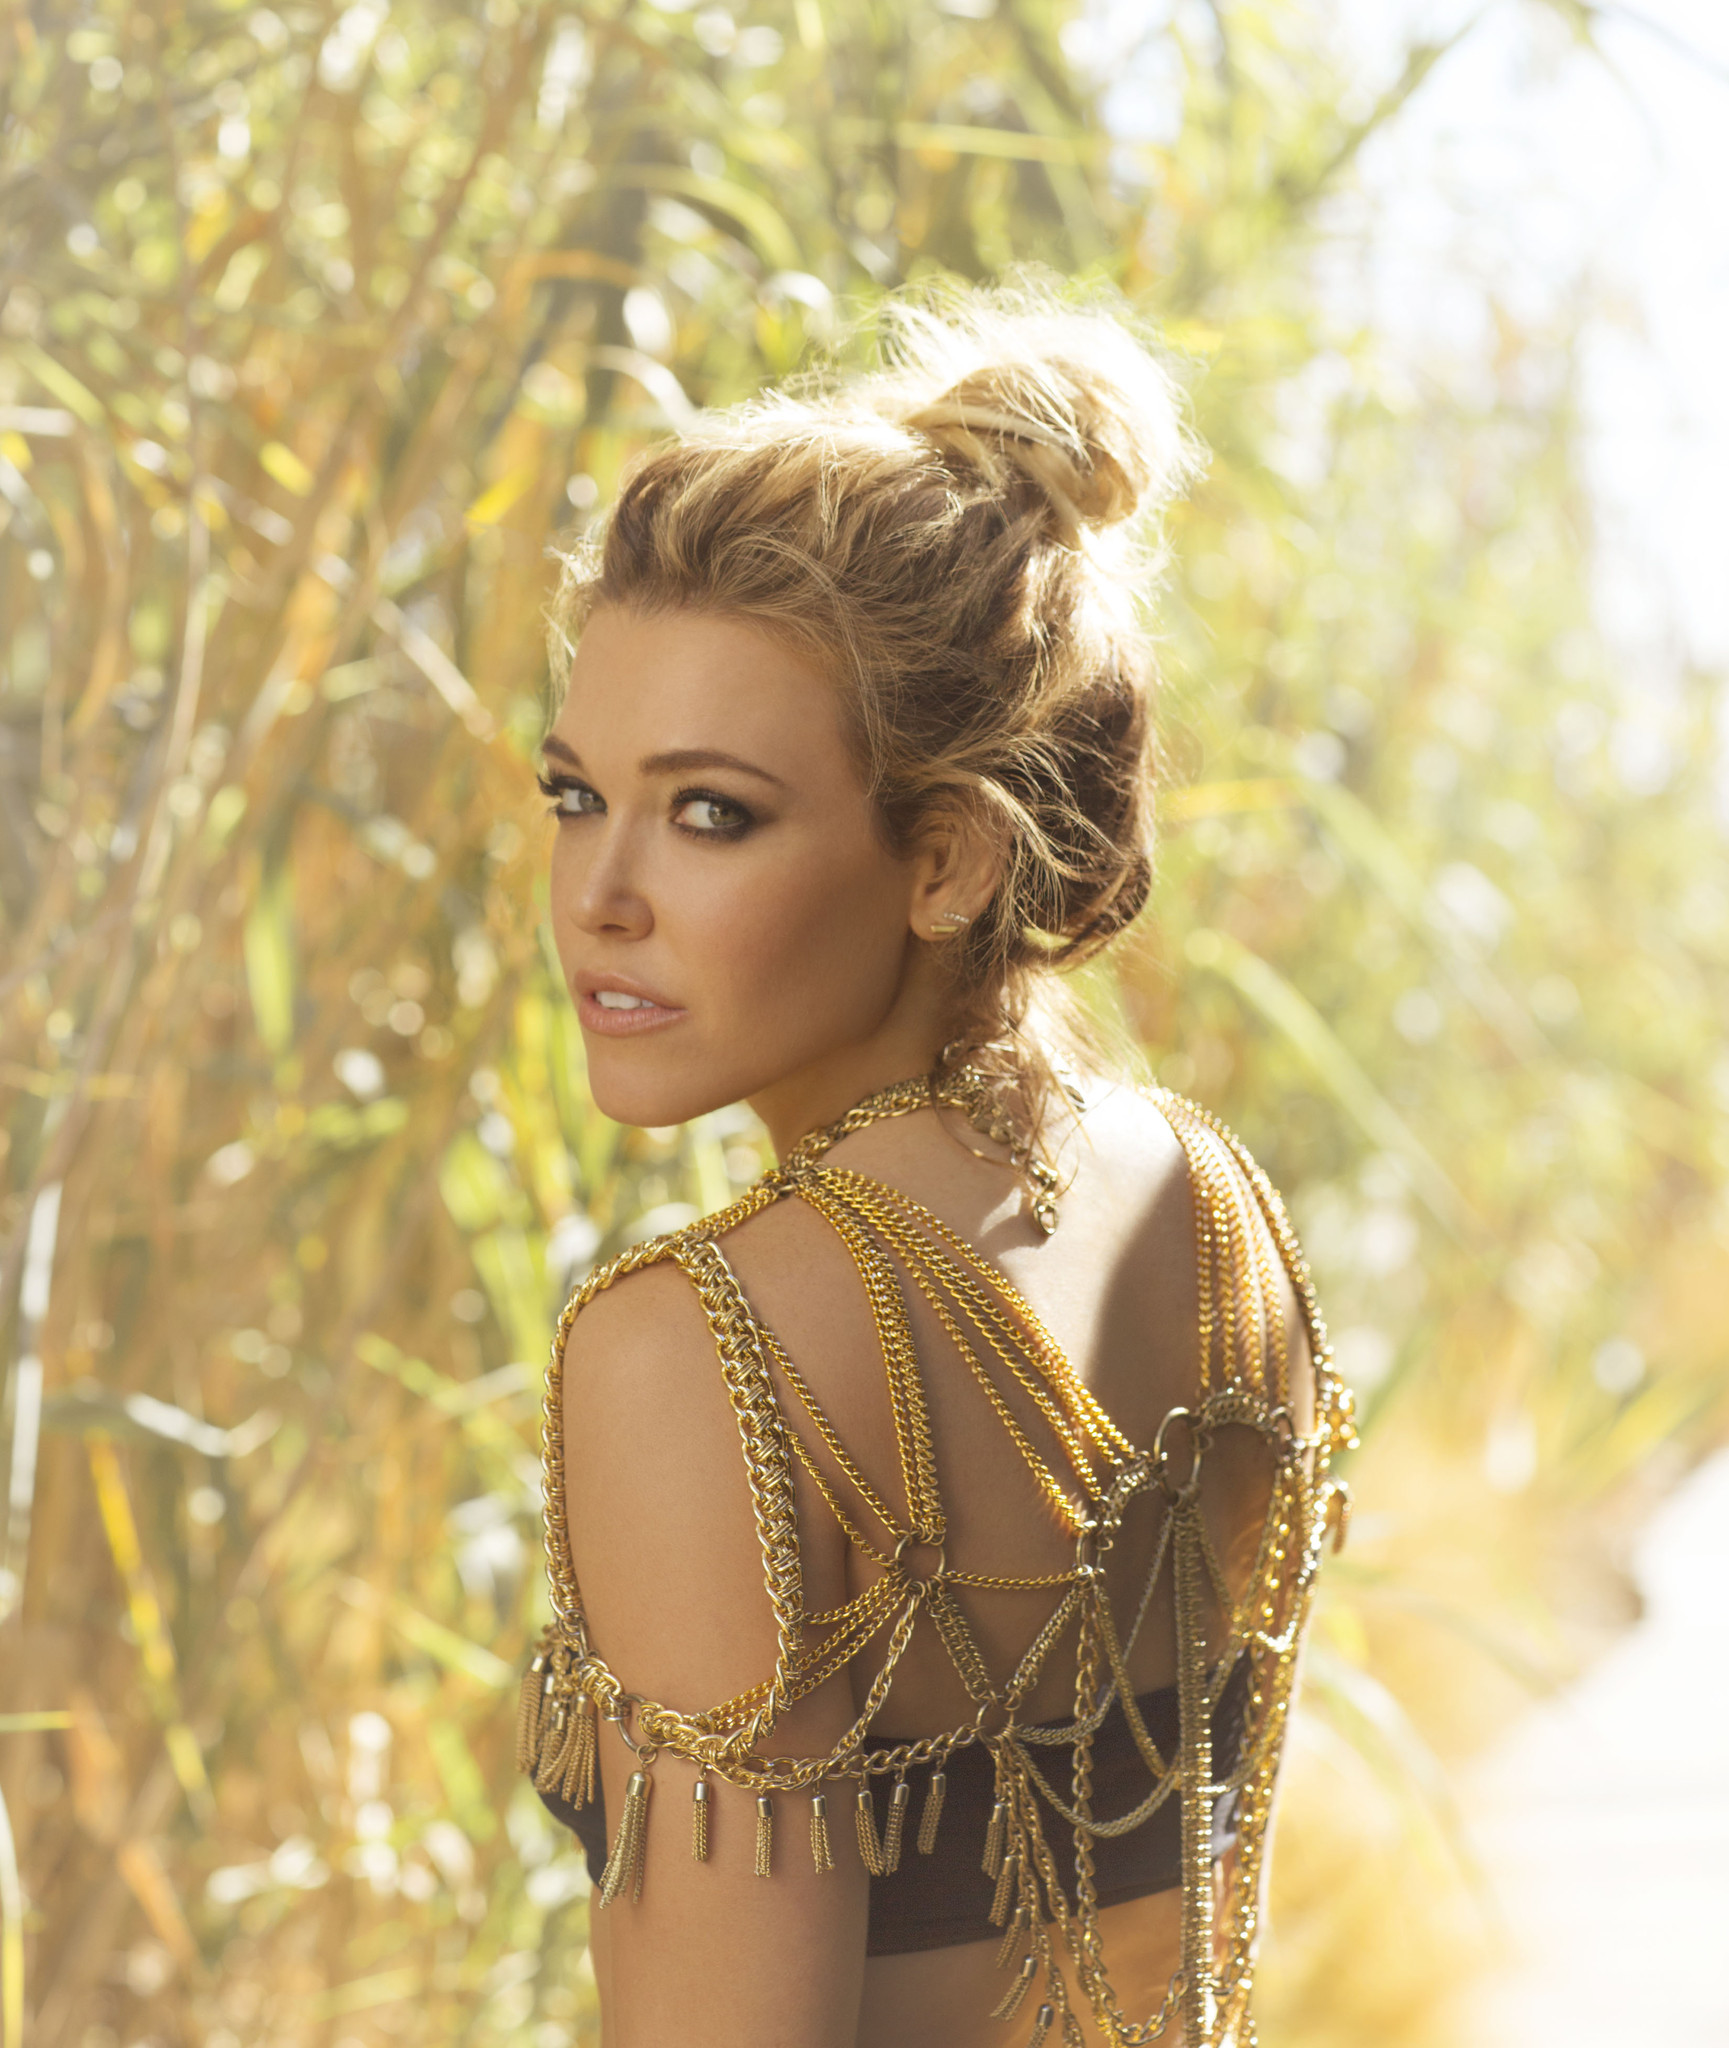 rachel platten talks  u0026 39 fight song u0026 39  and why she owes her